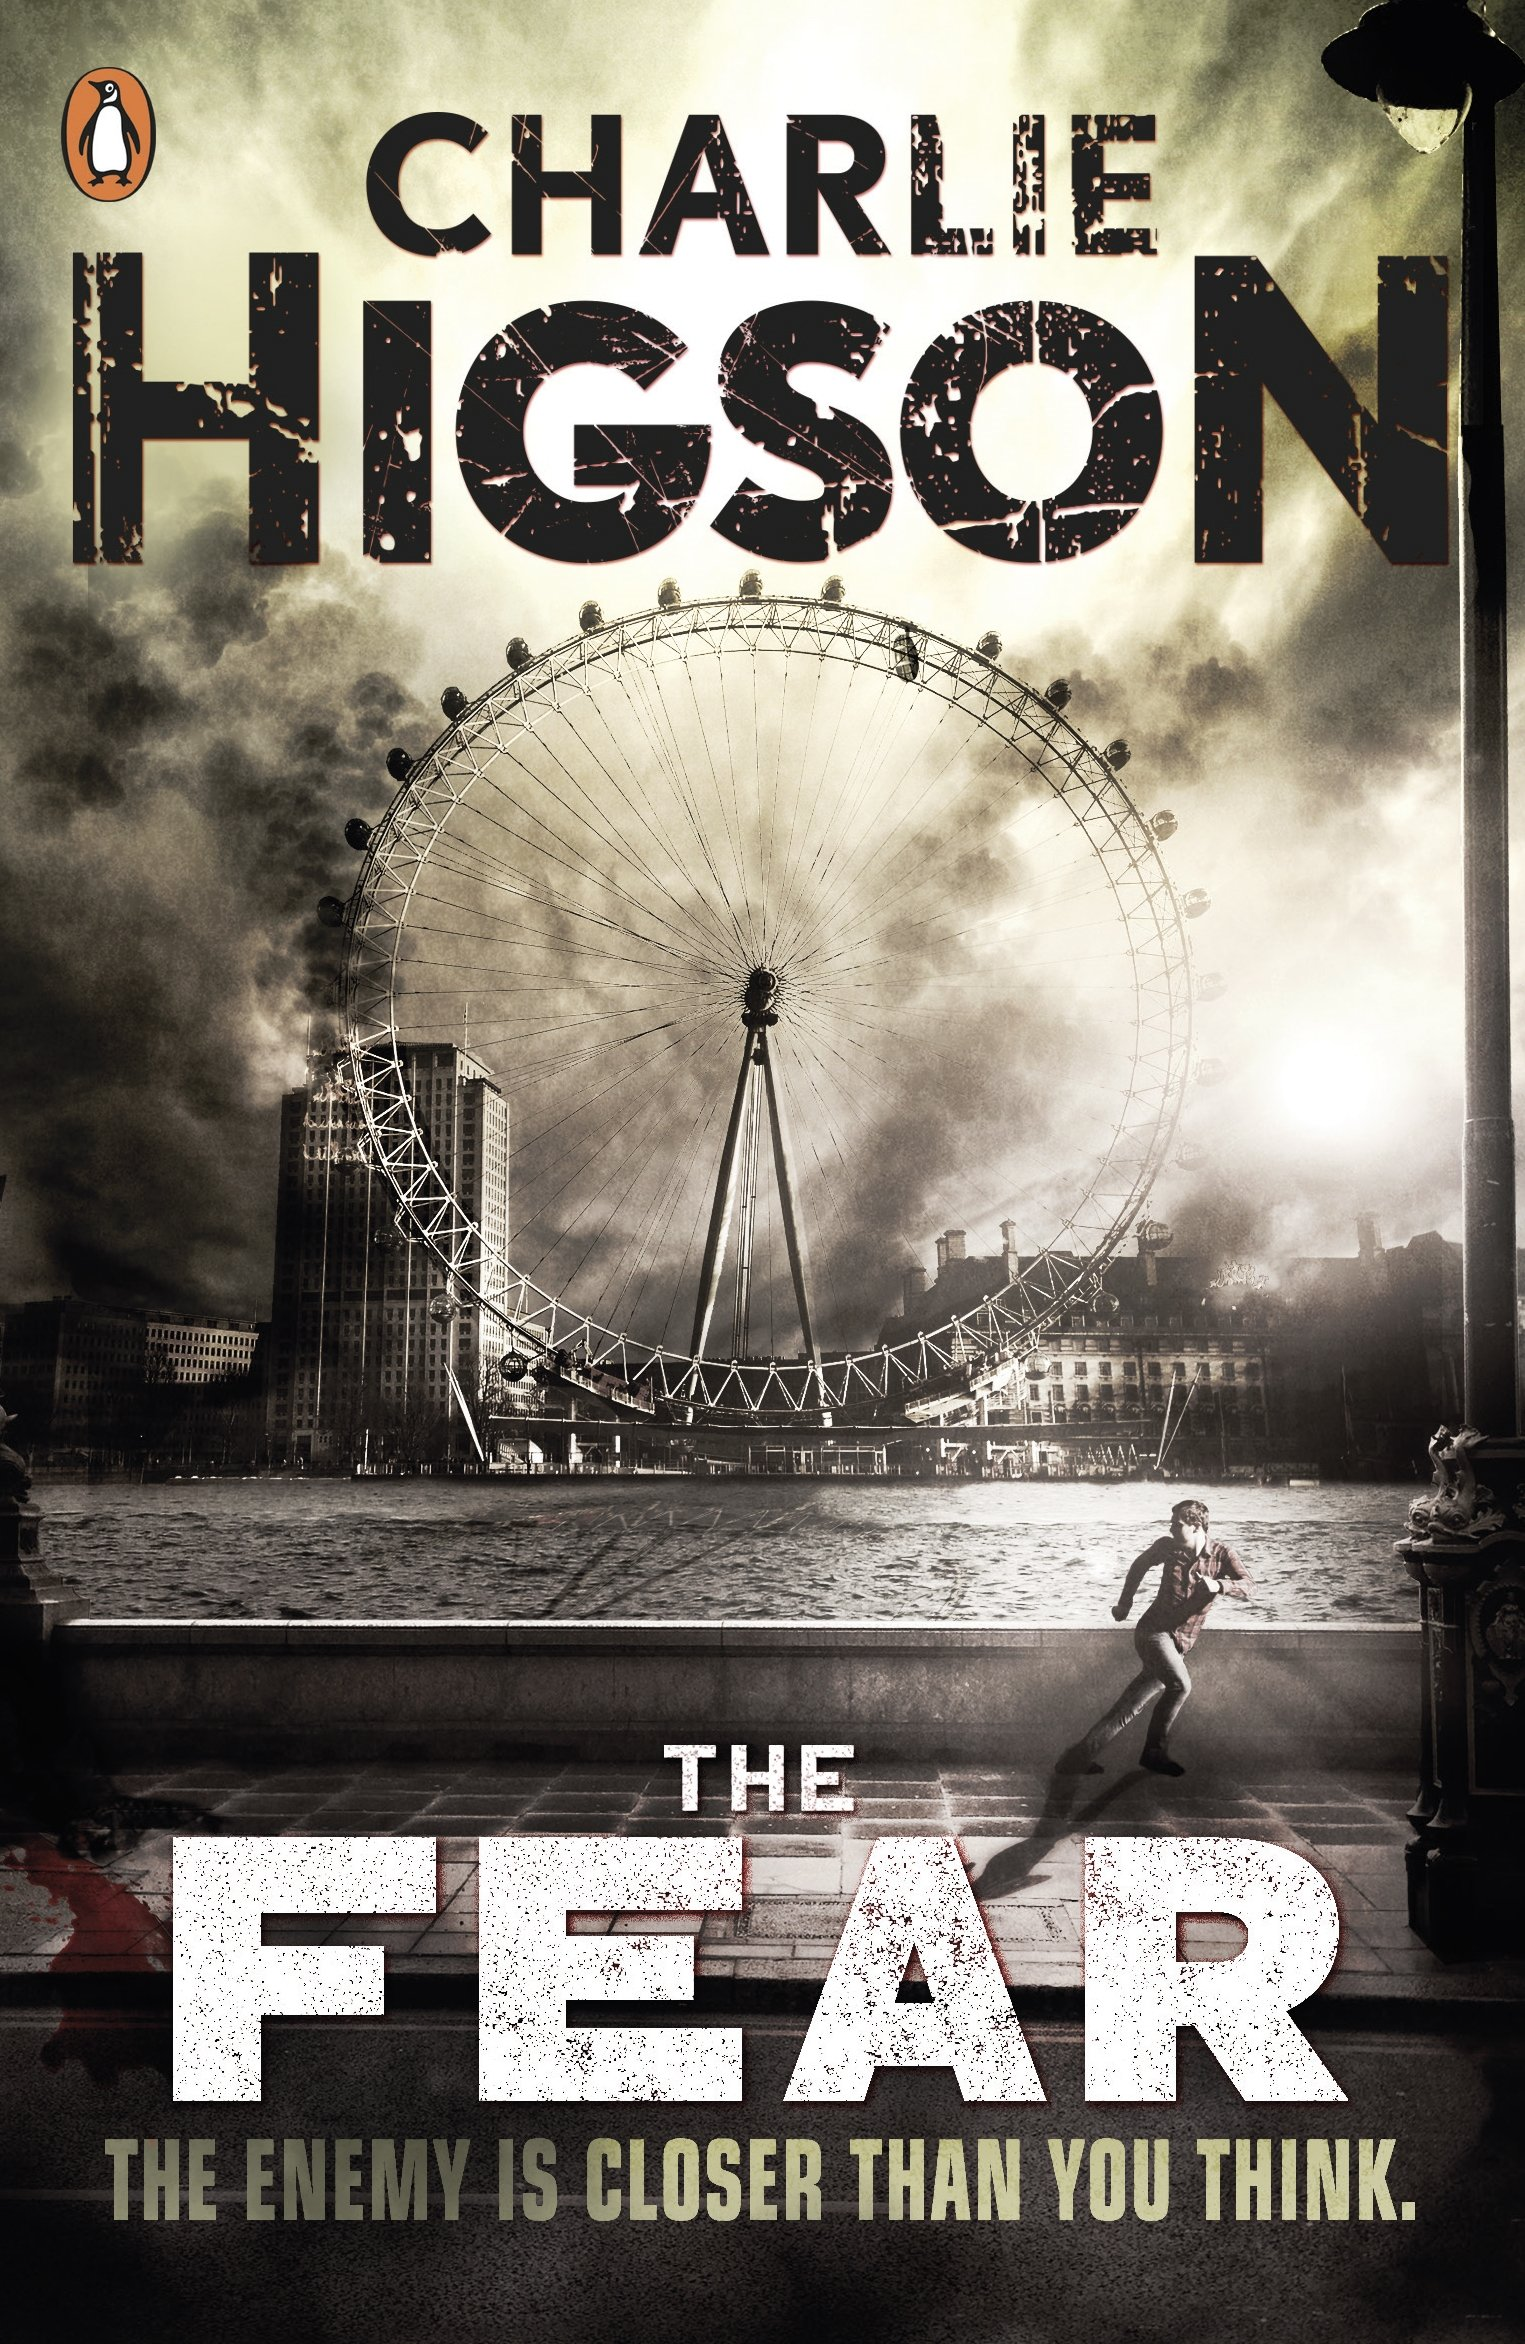 the fear the enemy book 3 amazon co uk charlie higson the fear the enemy book 3 amazon co uk charlie higson 9780141325064 books